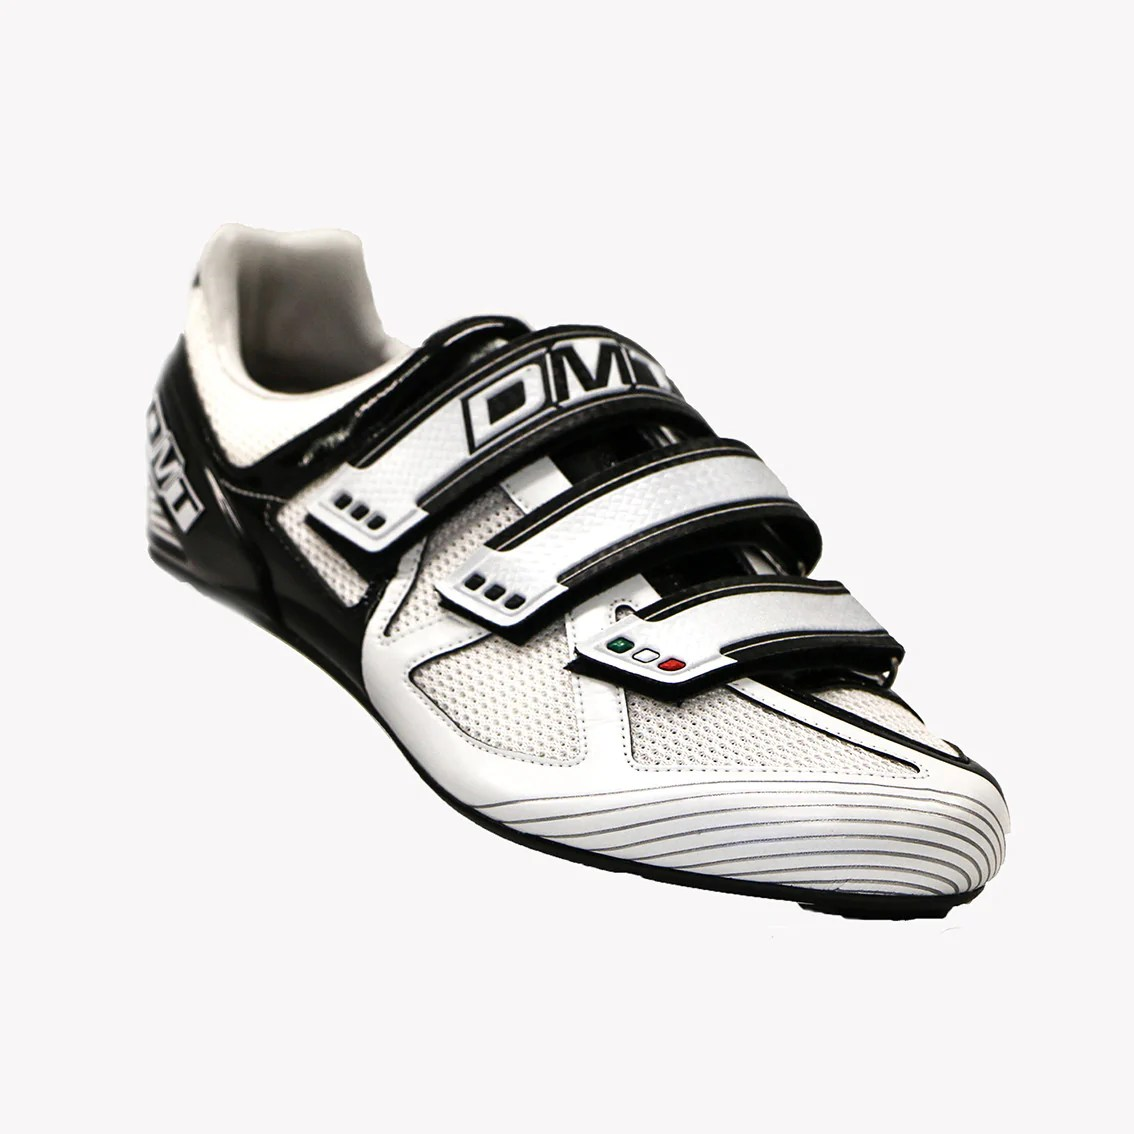 Dmt Libra Dmt Ultra Light Road Cycling Shoes